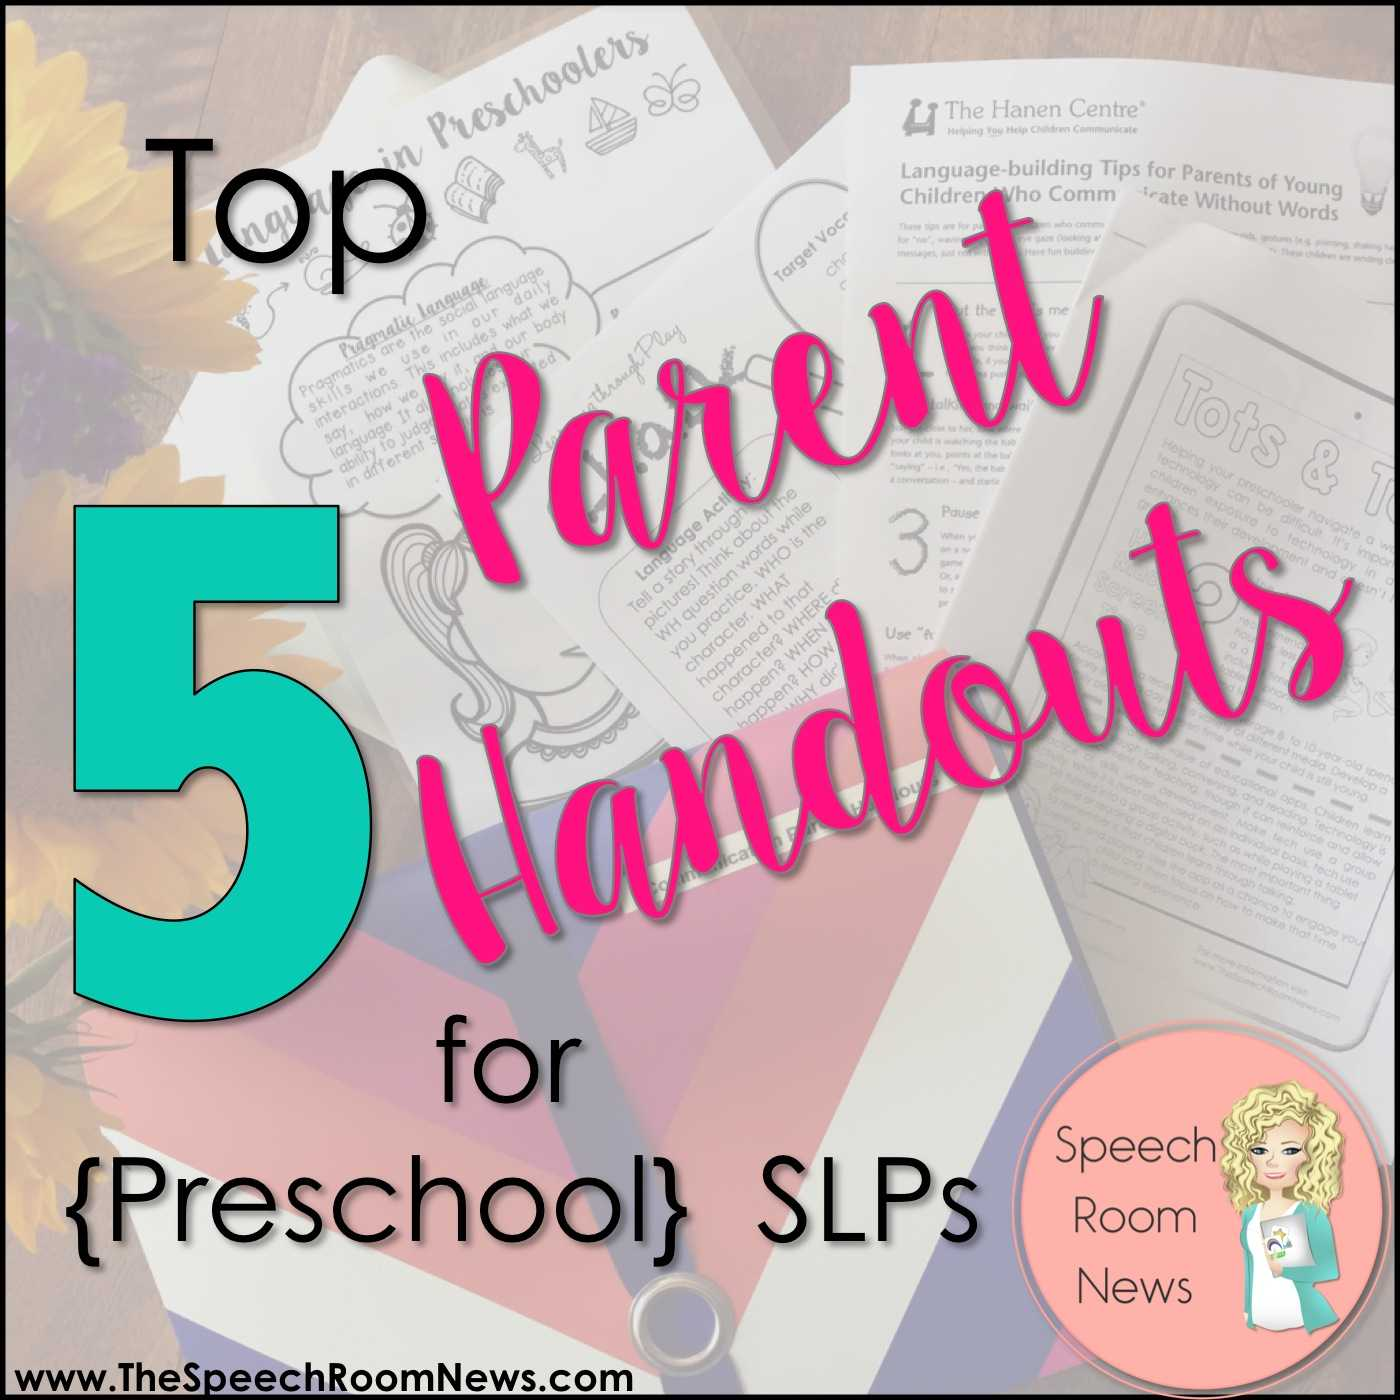 Speech therapy Worksheets for Preschoolers and top 5 Parent Handouts for Preschool Slps Speech Room News